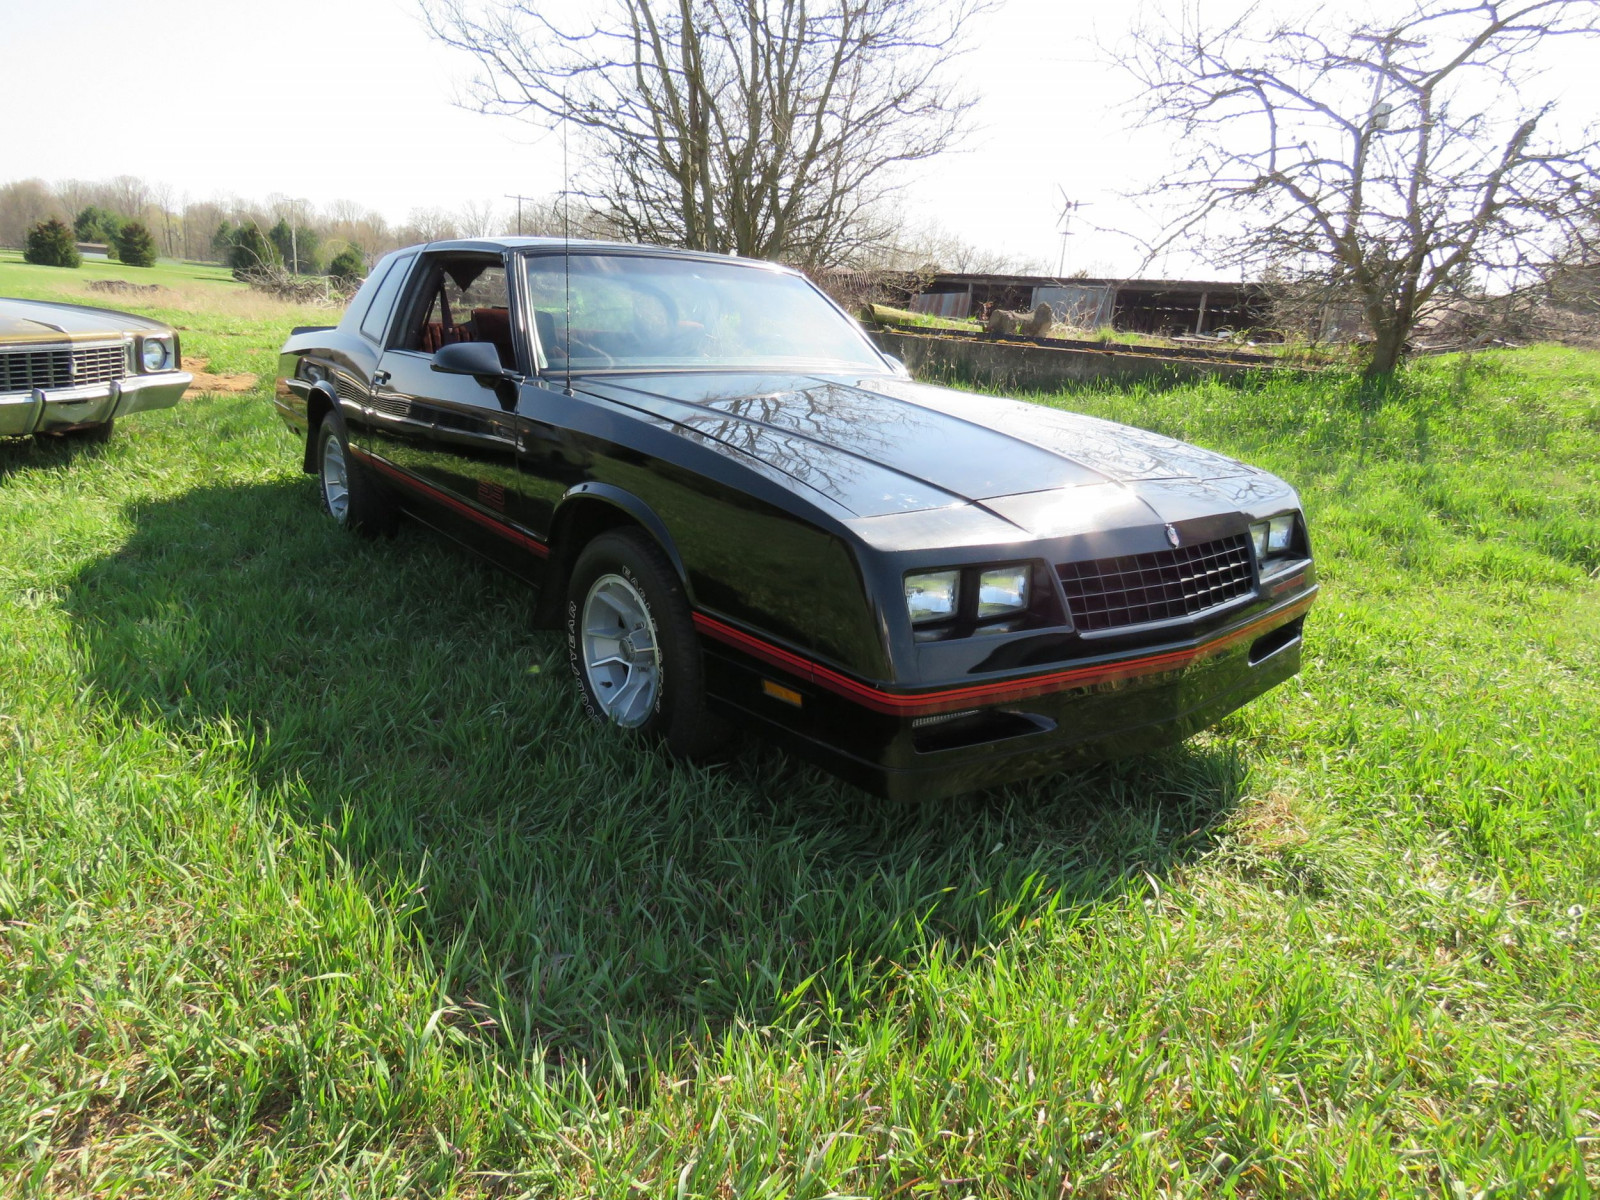 1987 Chevrolet Monte Carlo SS - Image 3